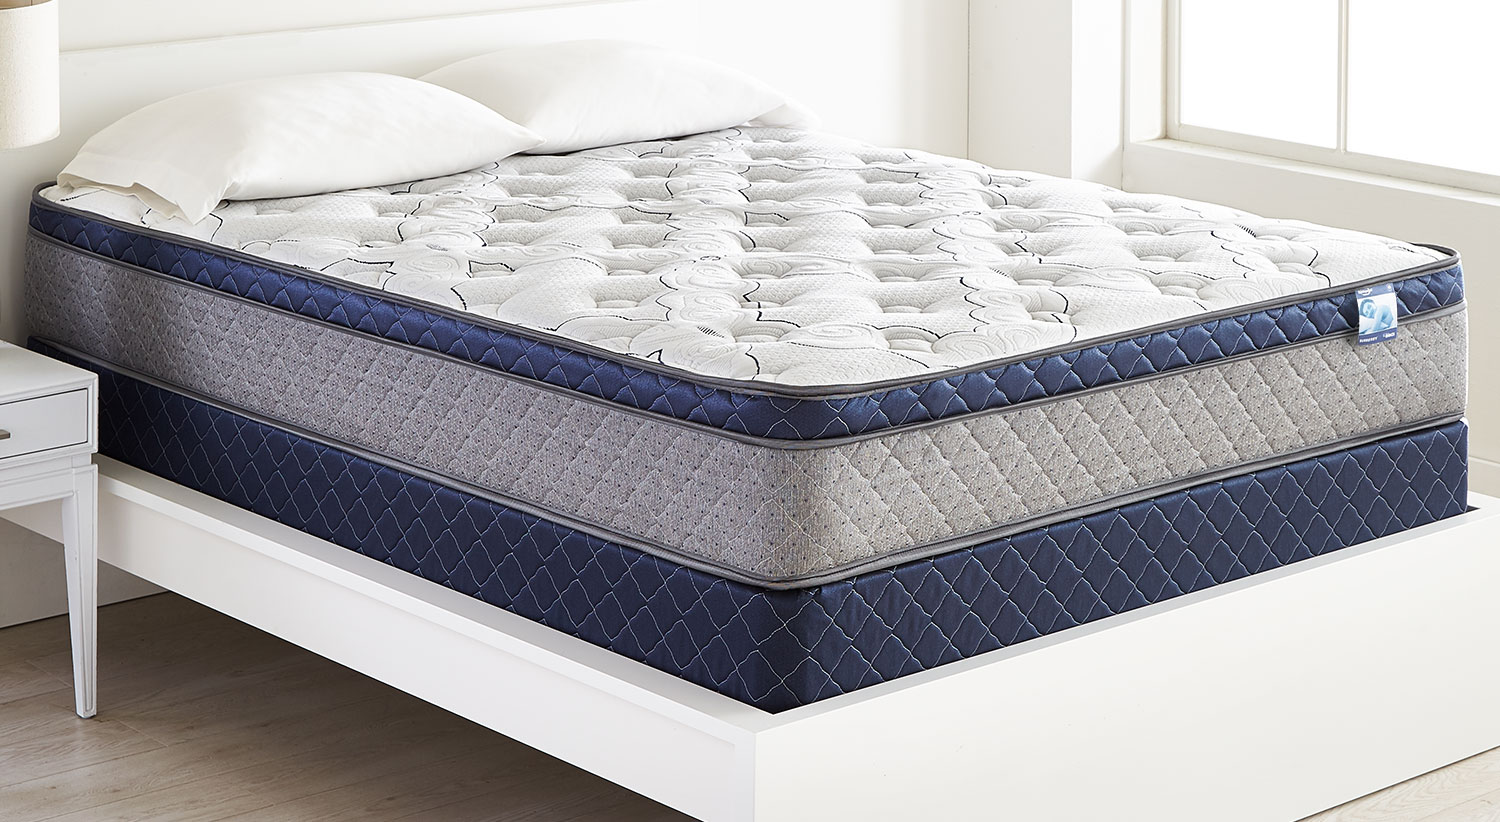 Springwall Burberry Euro-Top Firm Full Mattress Set